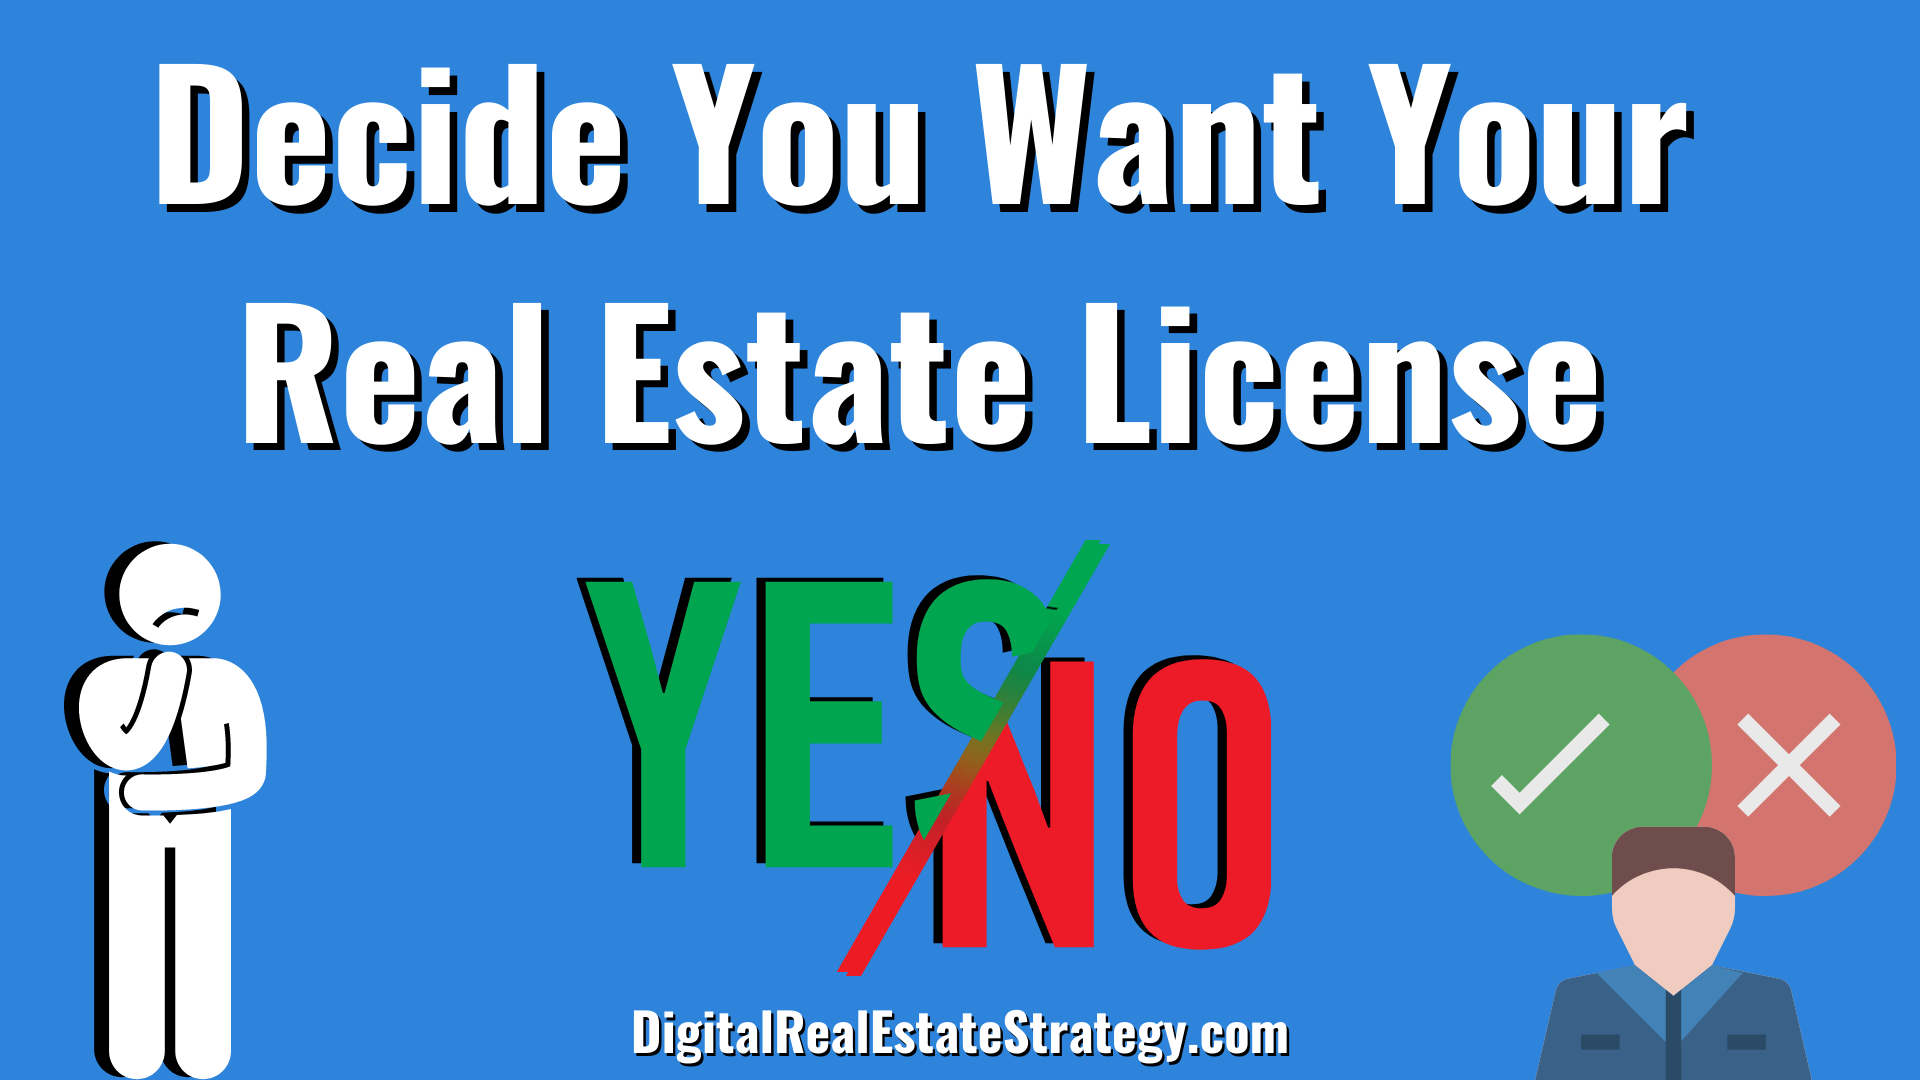 Decide You Want Your Real Estate License